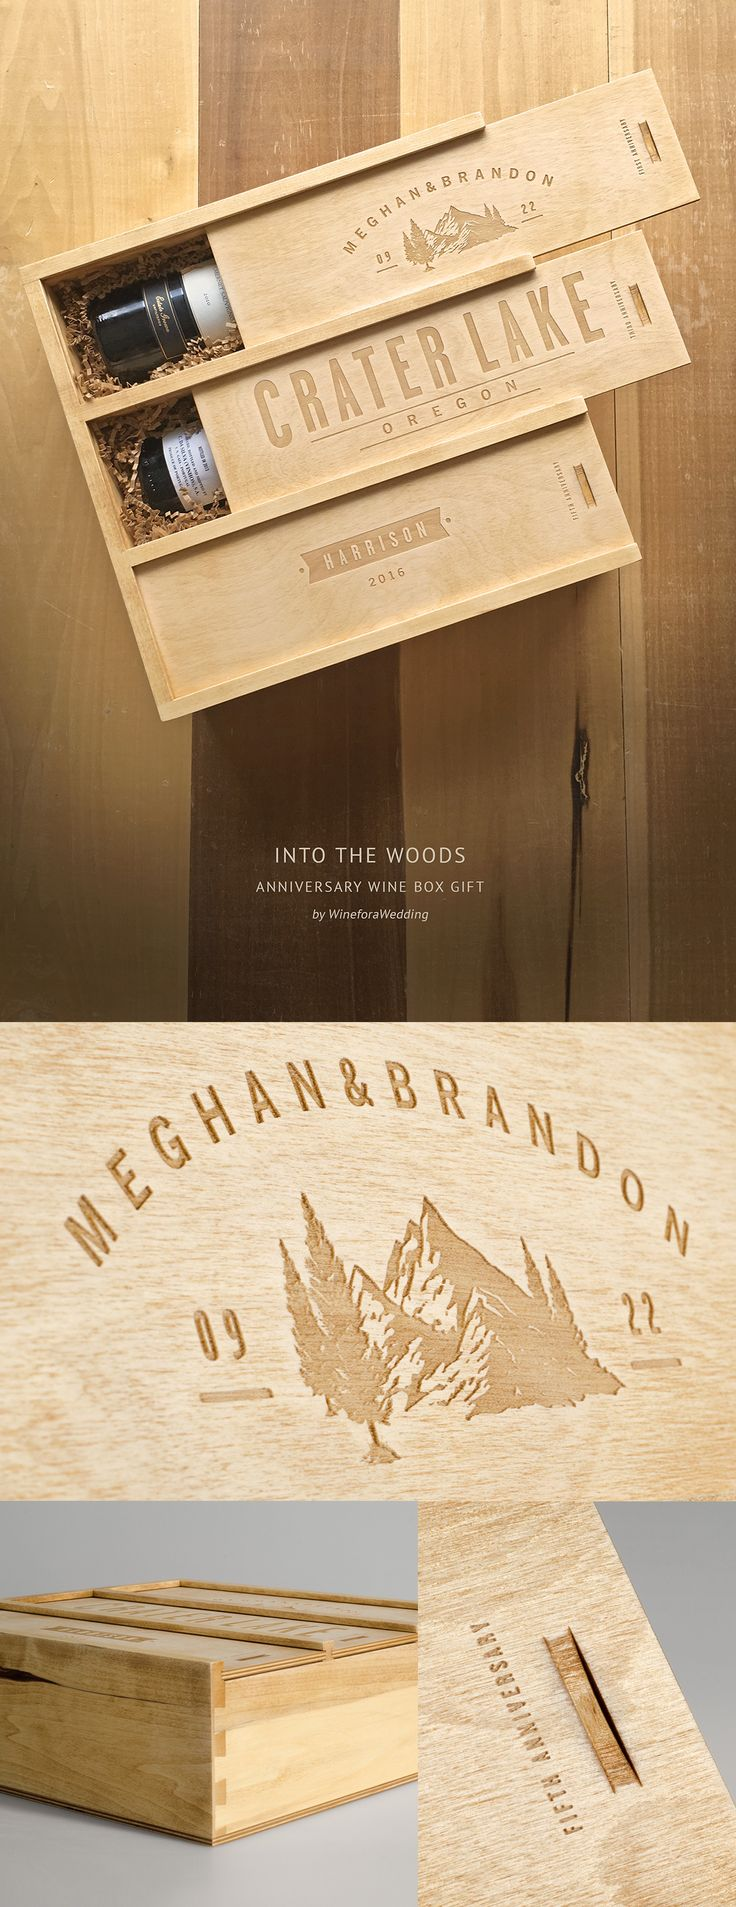 """Into The Woods"" — an Wedding Wine Box Gift inspired by the beauty of the great outdoors. Hand finished with a ""rustic treatment"" giving each one a rich, bronze color and authentically aged appearance. Perfect for couples that want to commemorate their wedding location or other momentous occasion. Personalize with their names, locale, dates and more. #wineforawedding"